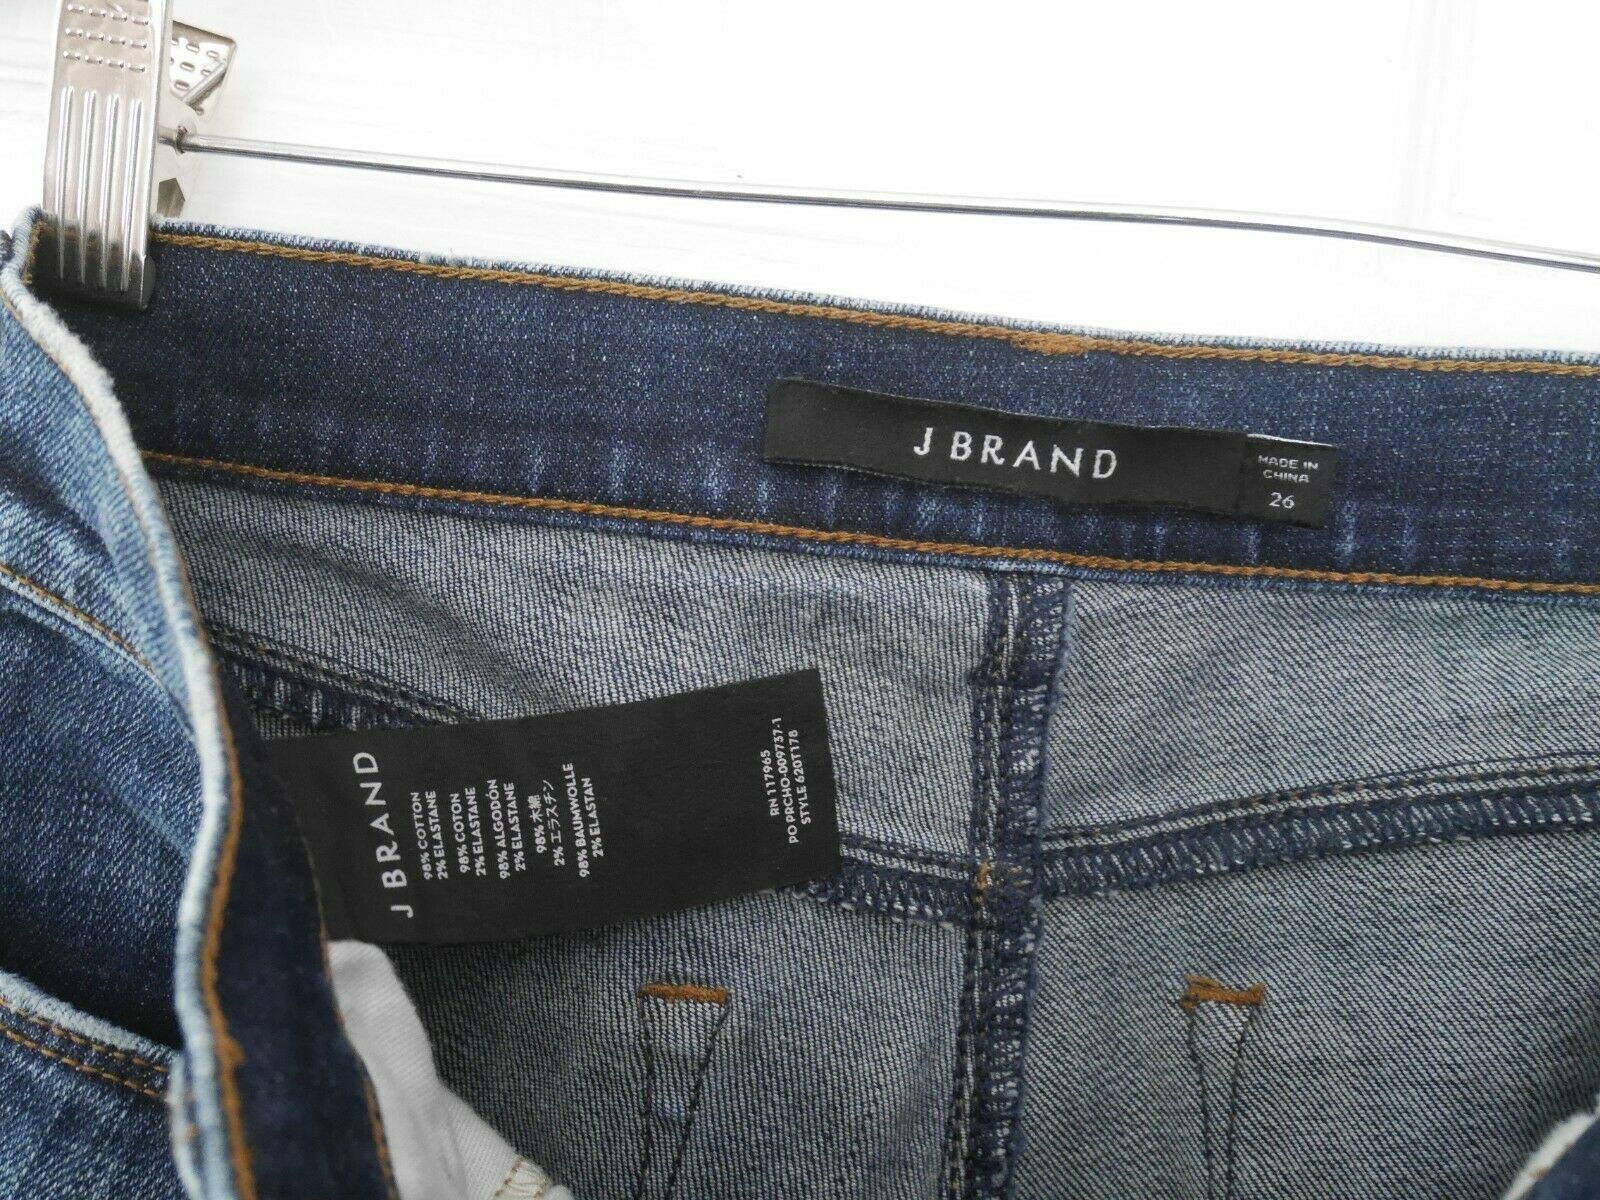 $228 J Brand - 620 Mid-Rise Super Skinny in Dark Erosion (Destroyed) - Size 26 image 8